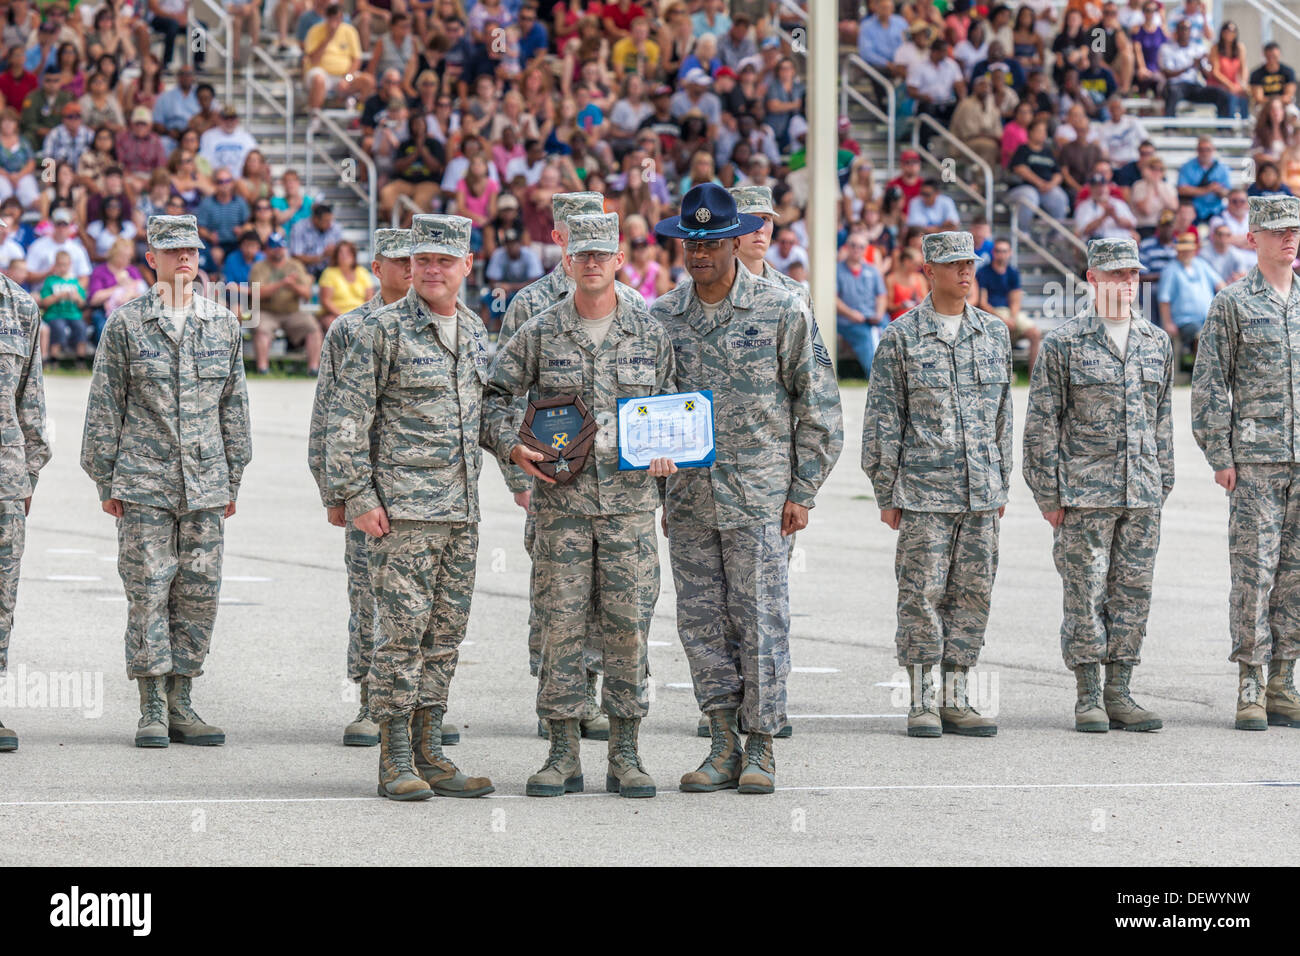 Awards being presented during United States Air Force basic